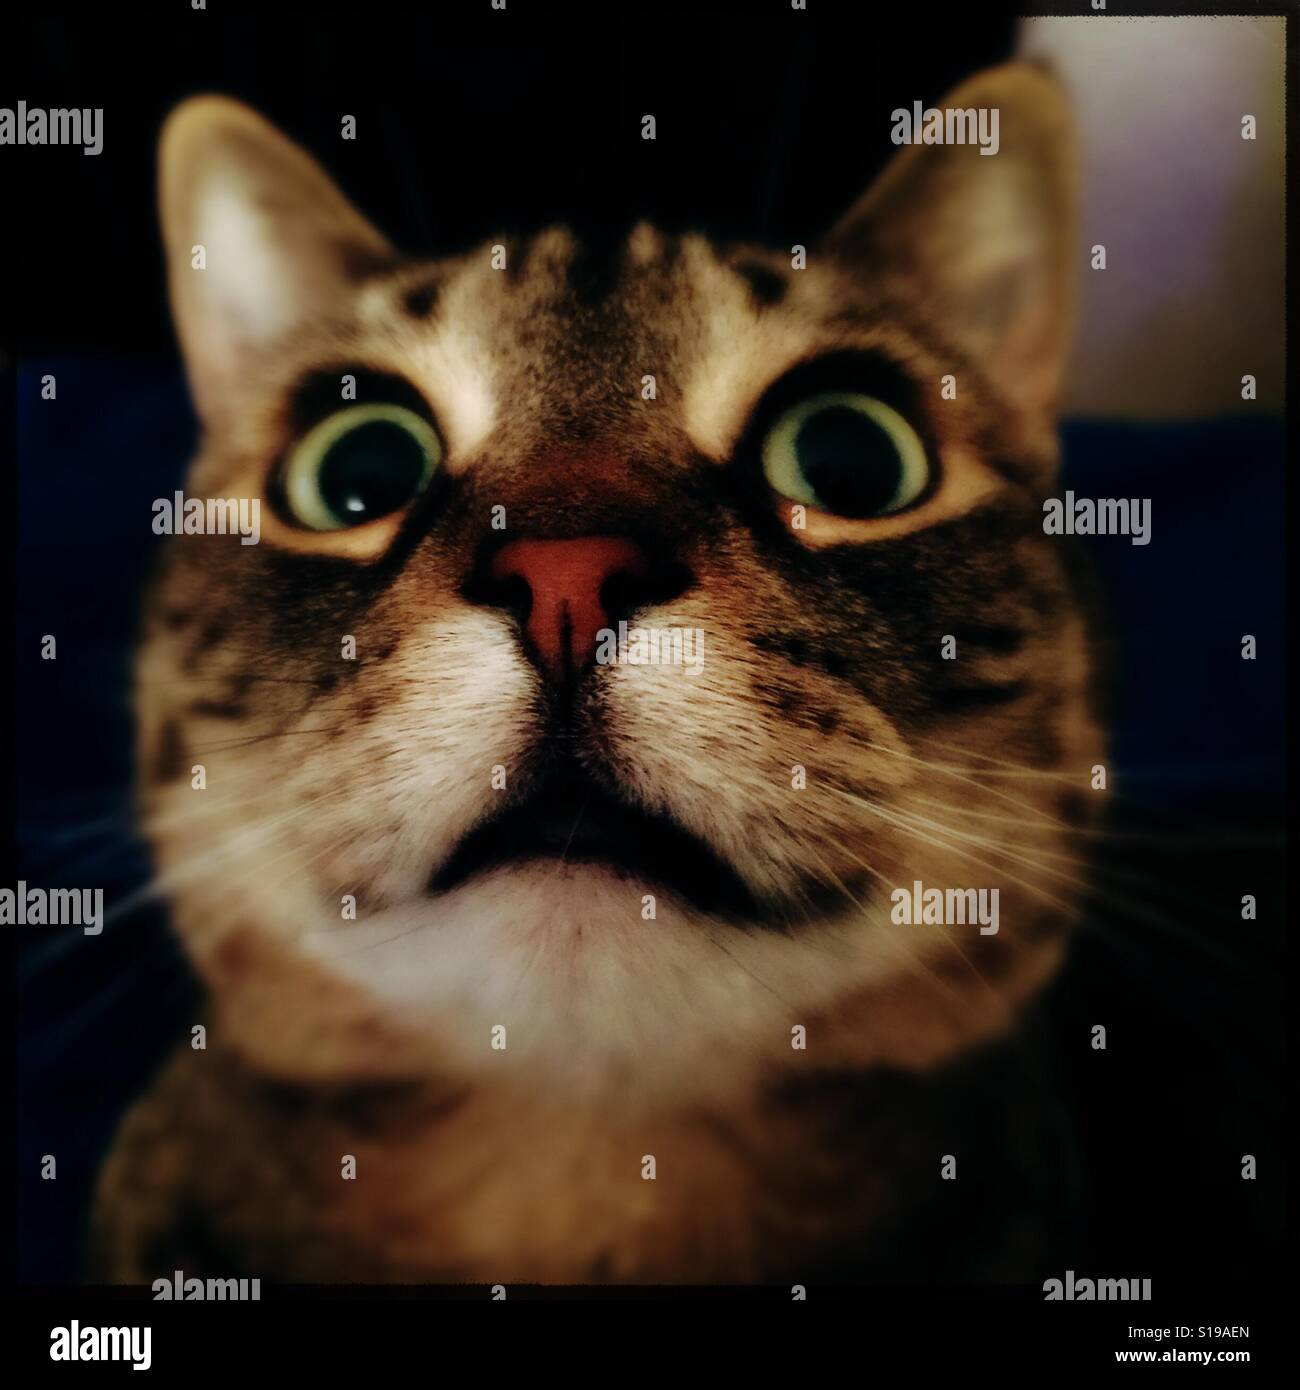 Funny Cat Face Stock Photos Amp Funny Cat Face Stock Images